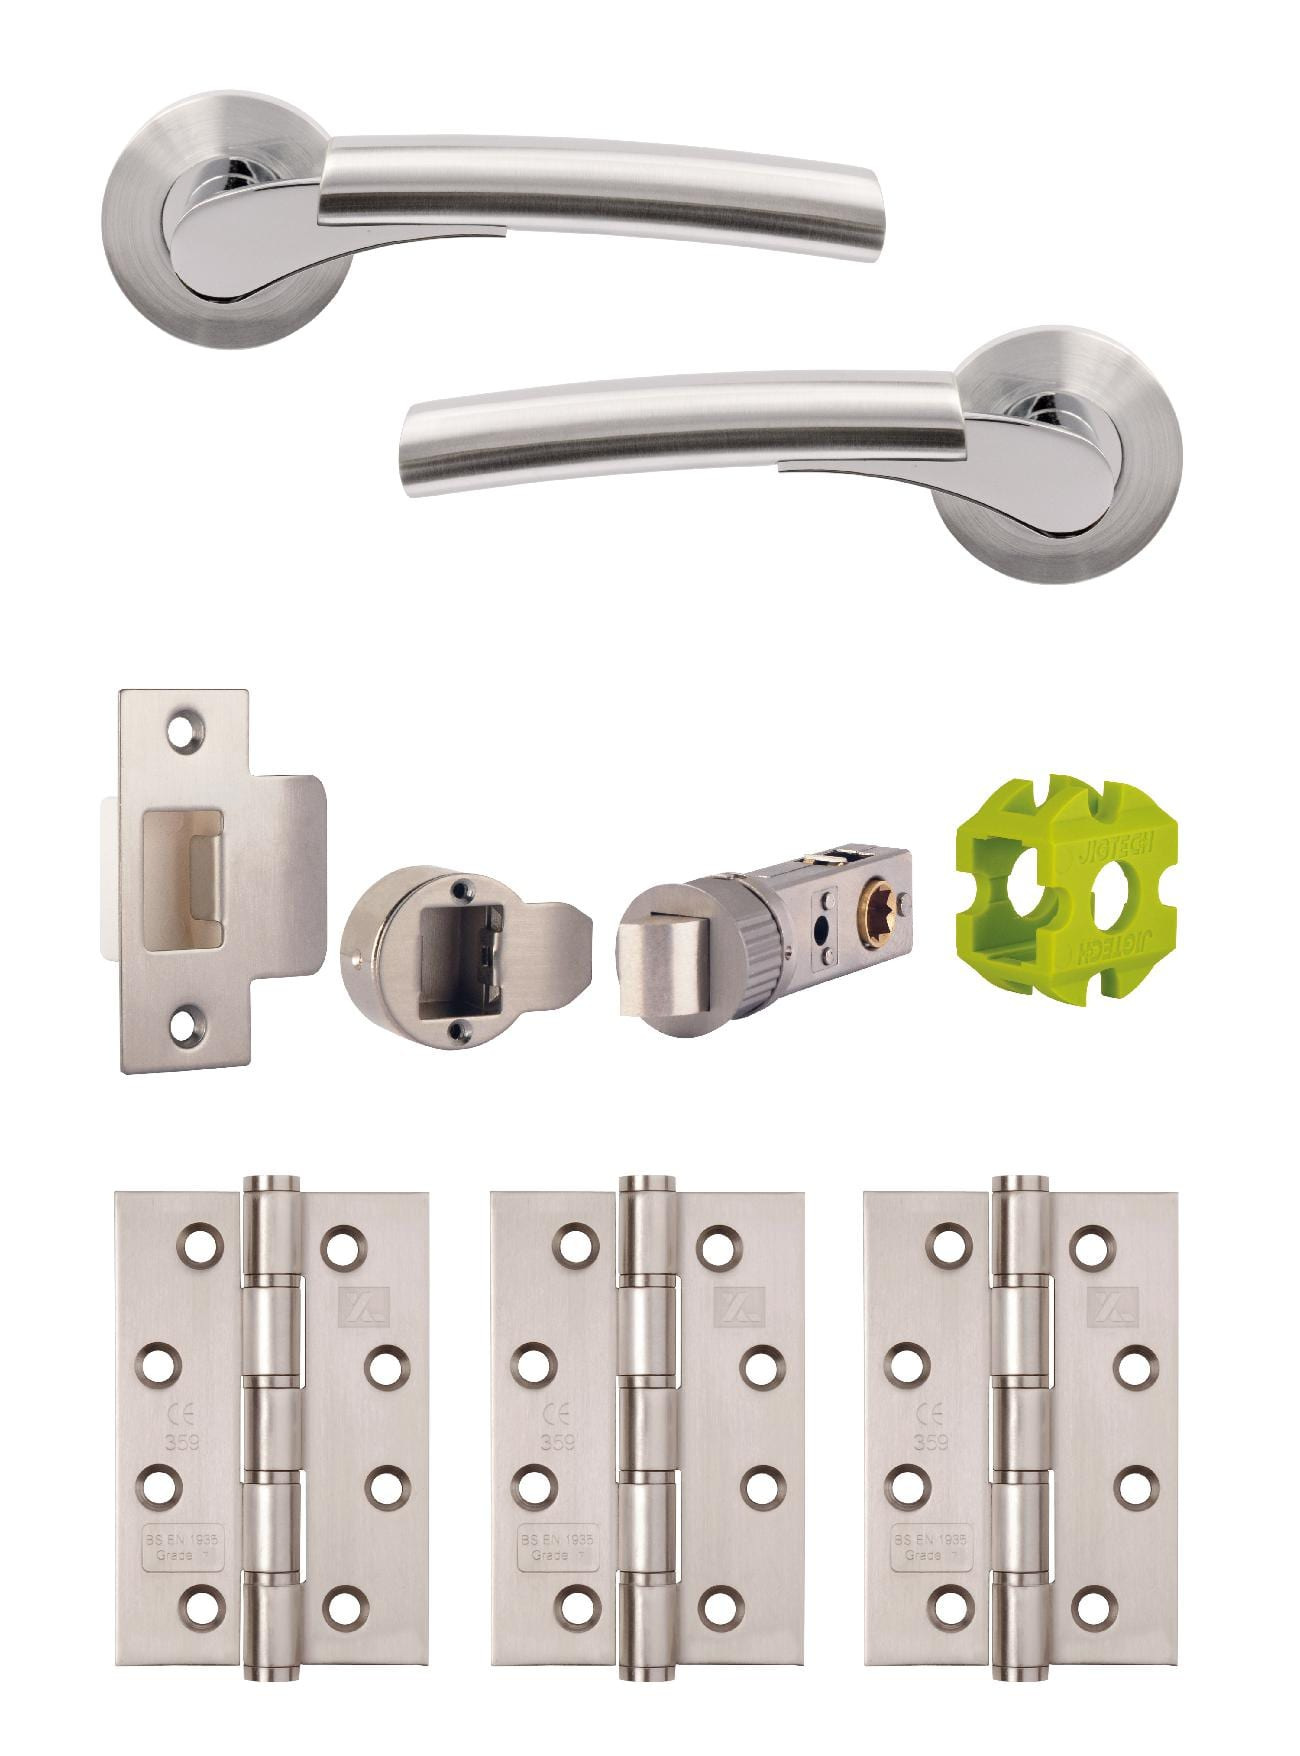 JIGTECH Quick Fit System ULTRO Lever on Rose Door Handles Chrome//Satin Dual Sets